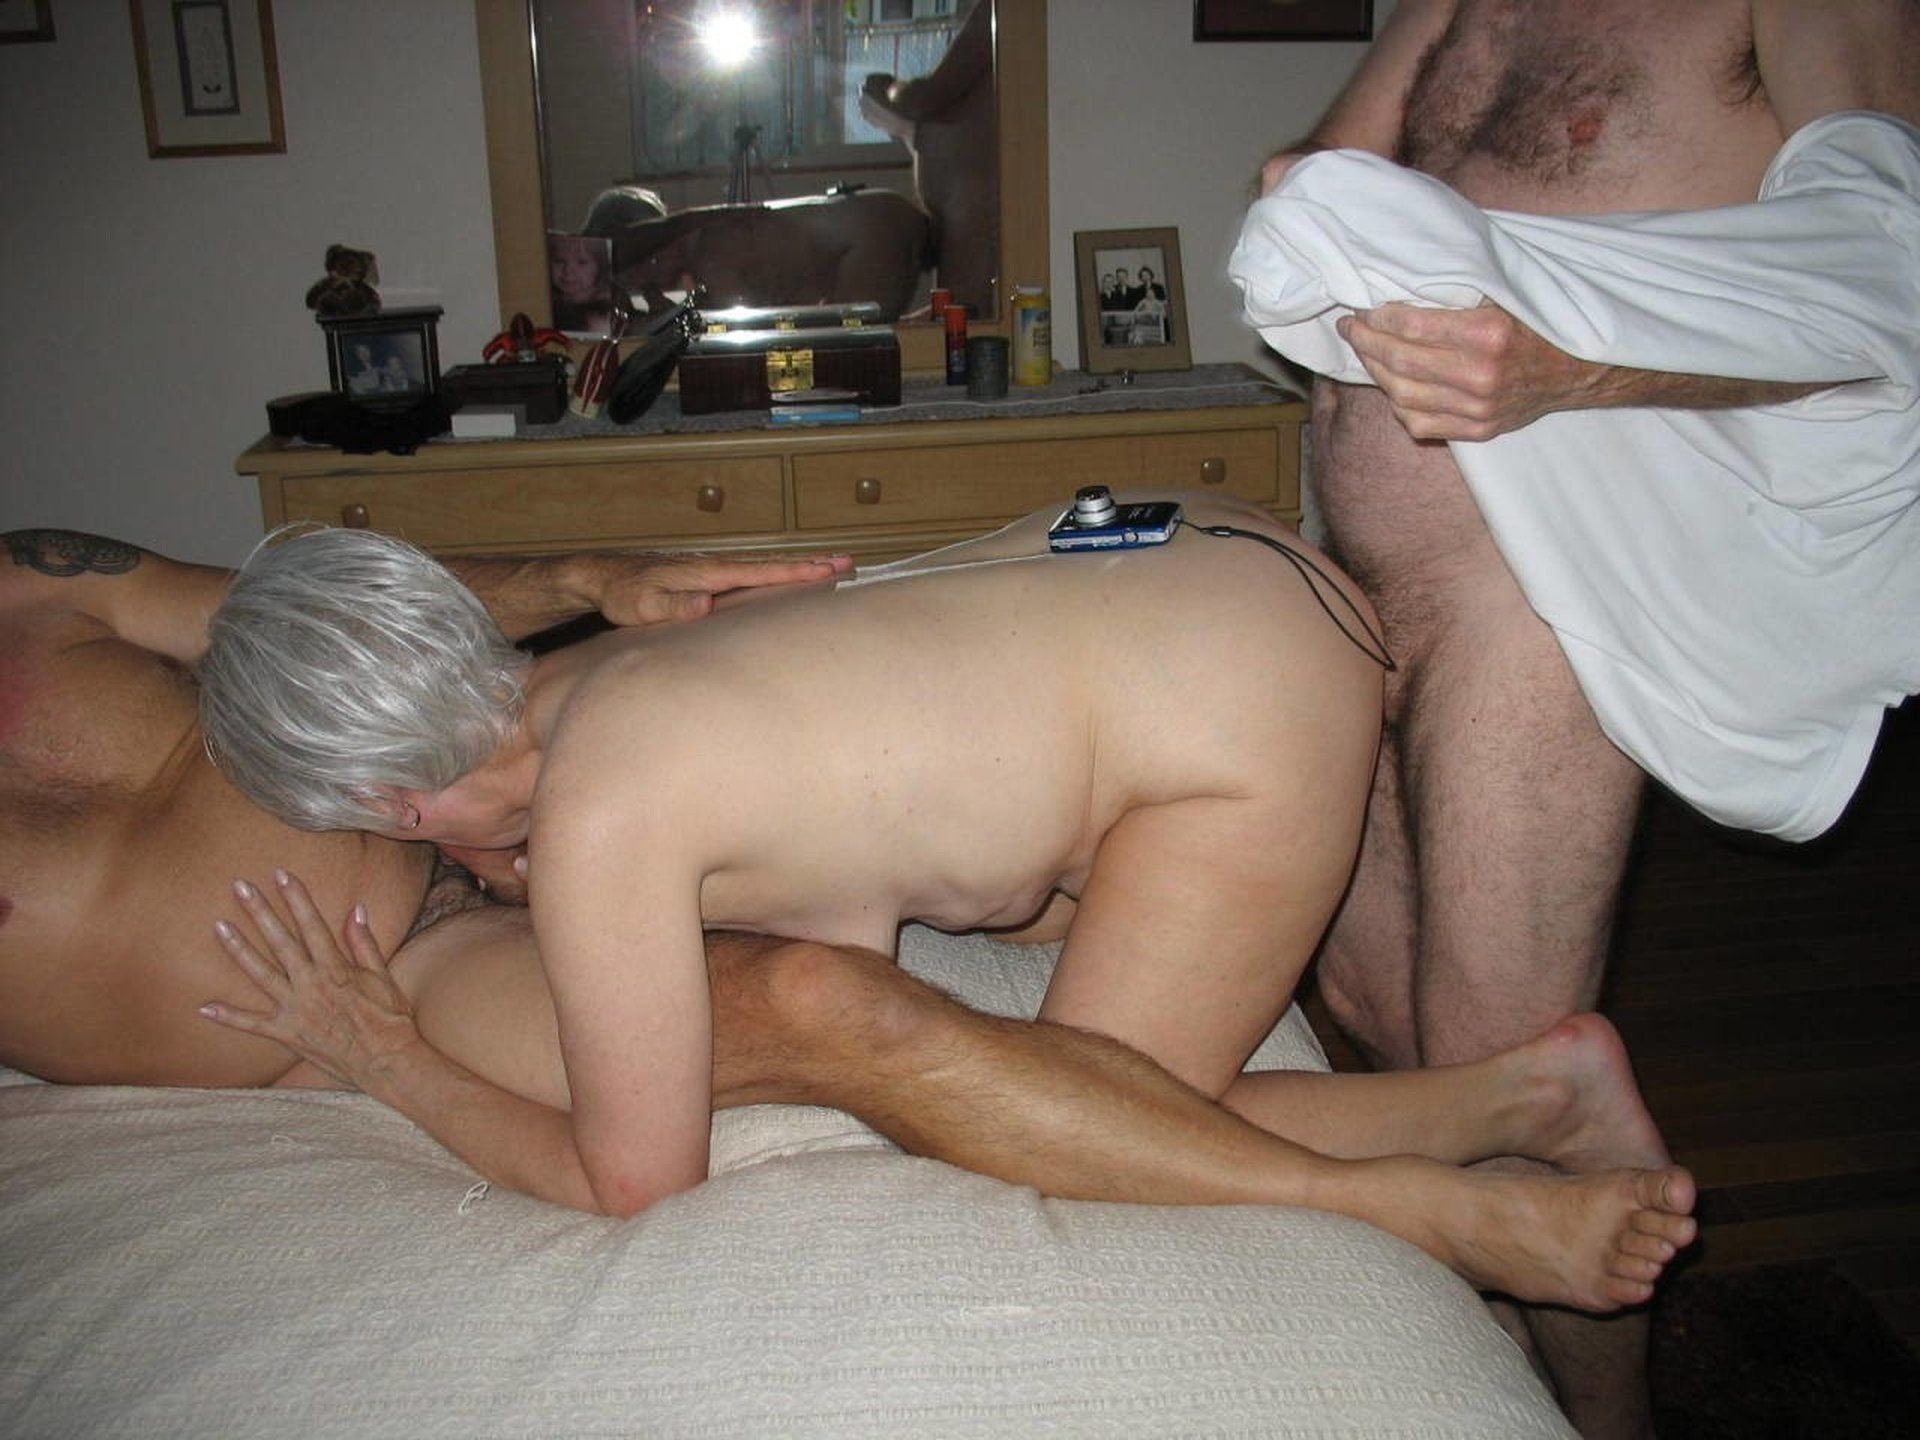 Amateur mature moans in pleasure in her first DP threesome. Old lady with saggy tits takes two boners at the same time